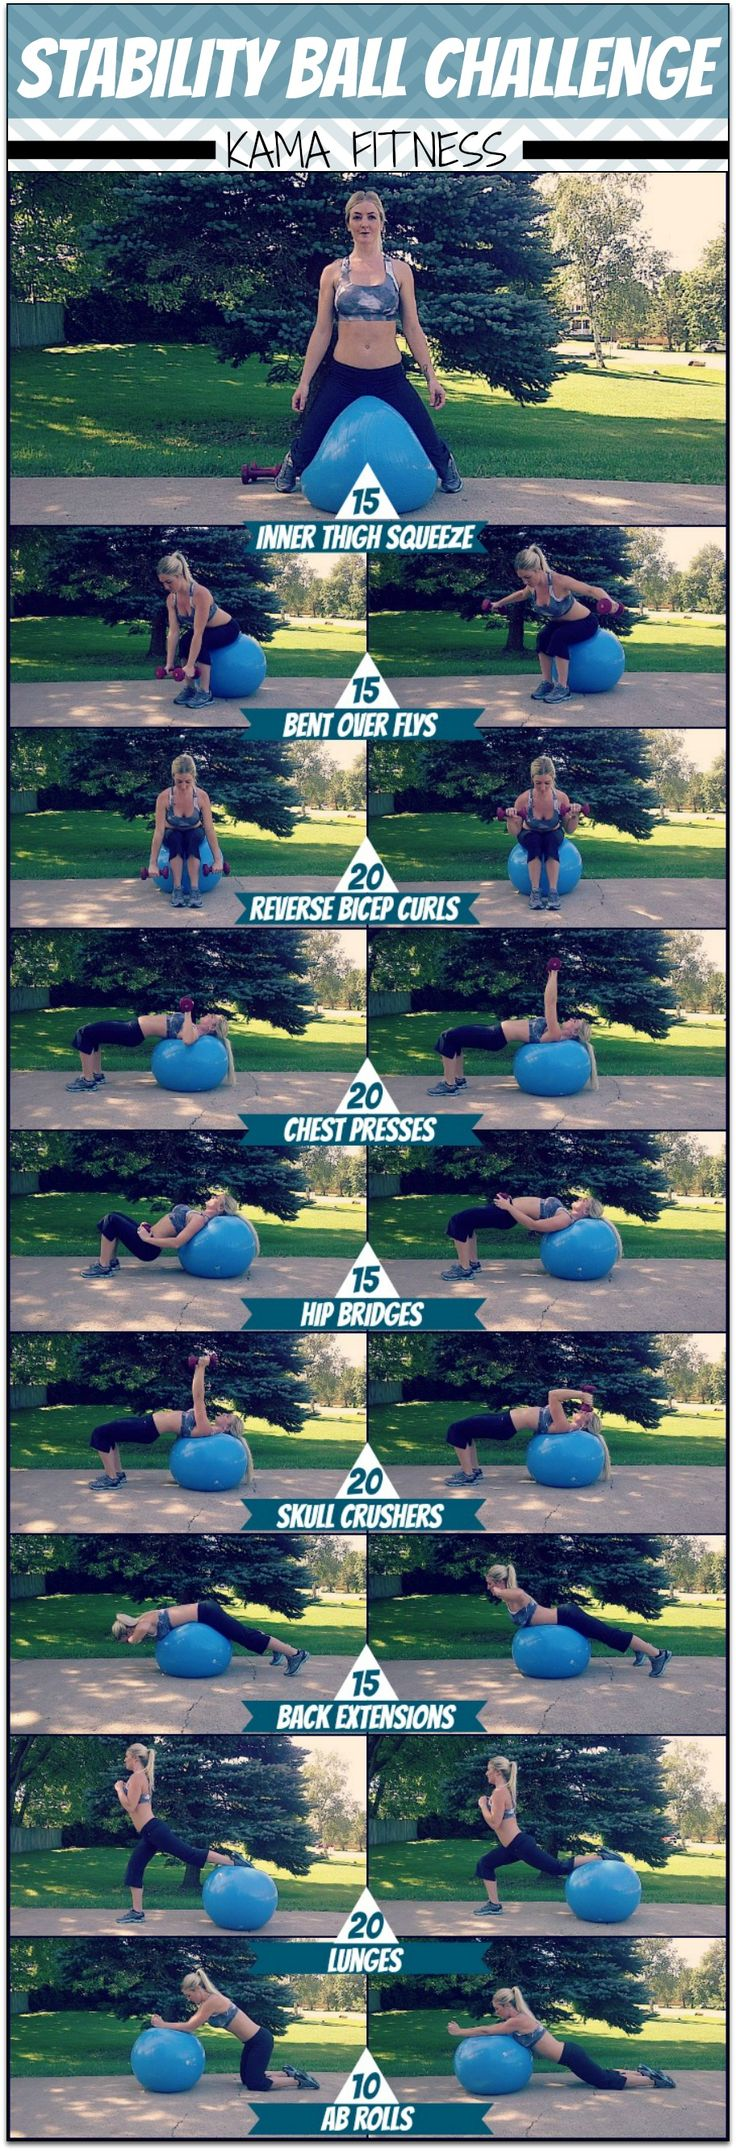 Stability Ball Challenge { with dumbbells } (KAMA FITNESS)